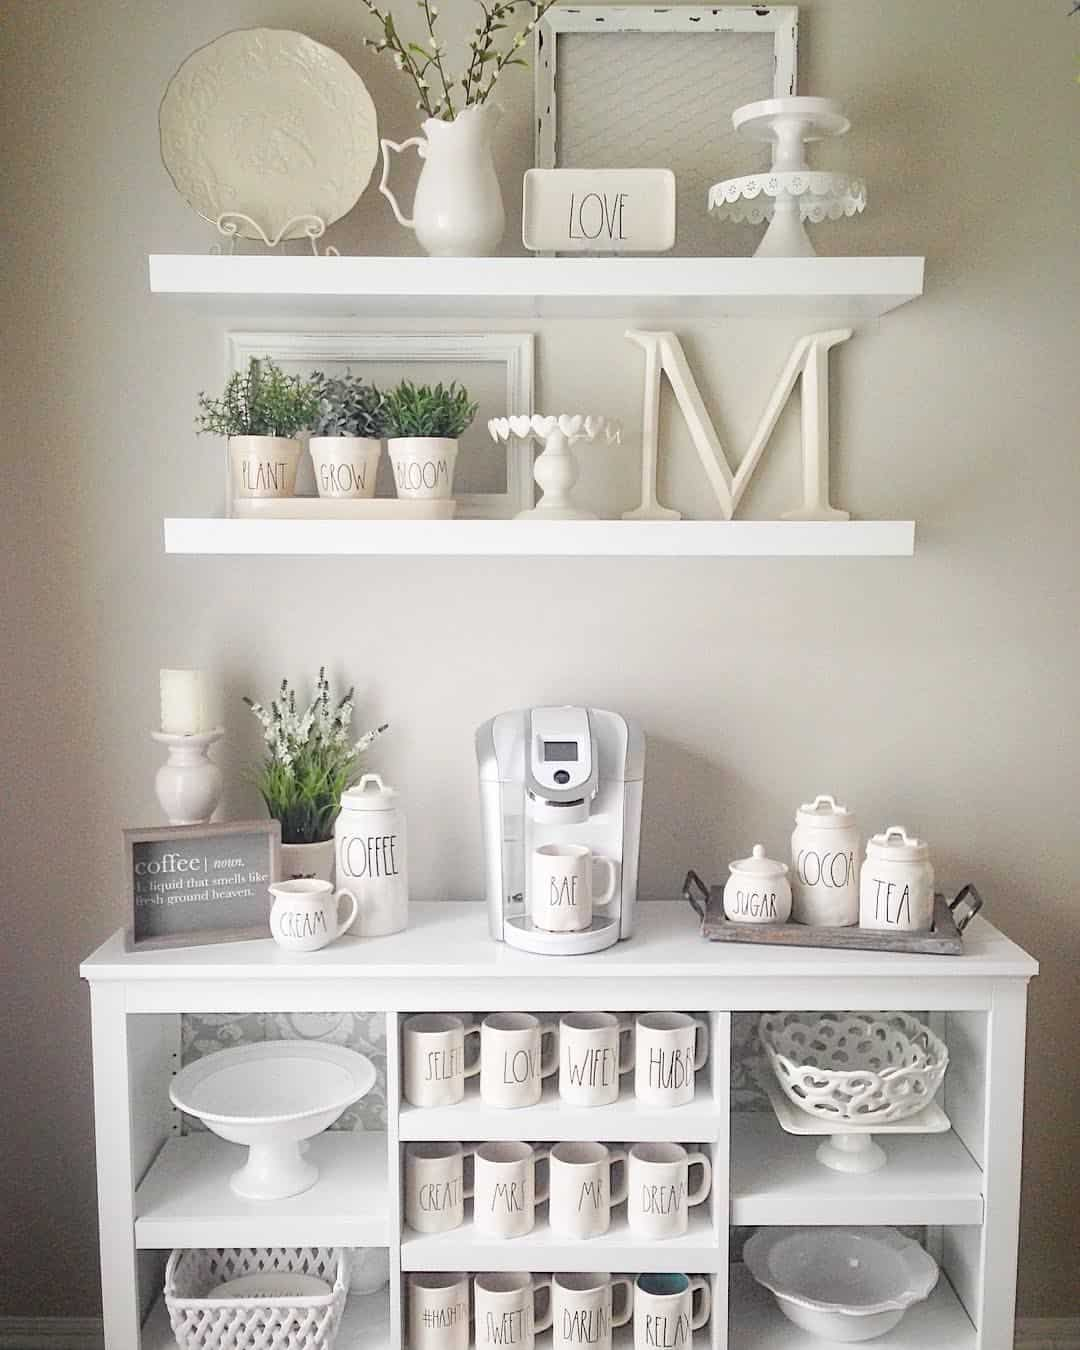 21 Amazing Shelf Rack Ideas For Your Home: Mug Racks Every Coffee And Tea Lover Should See